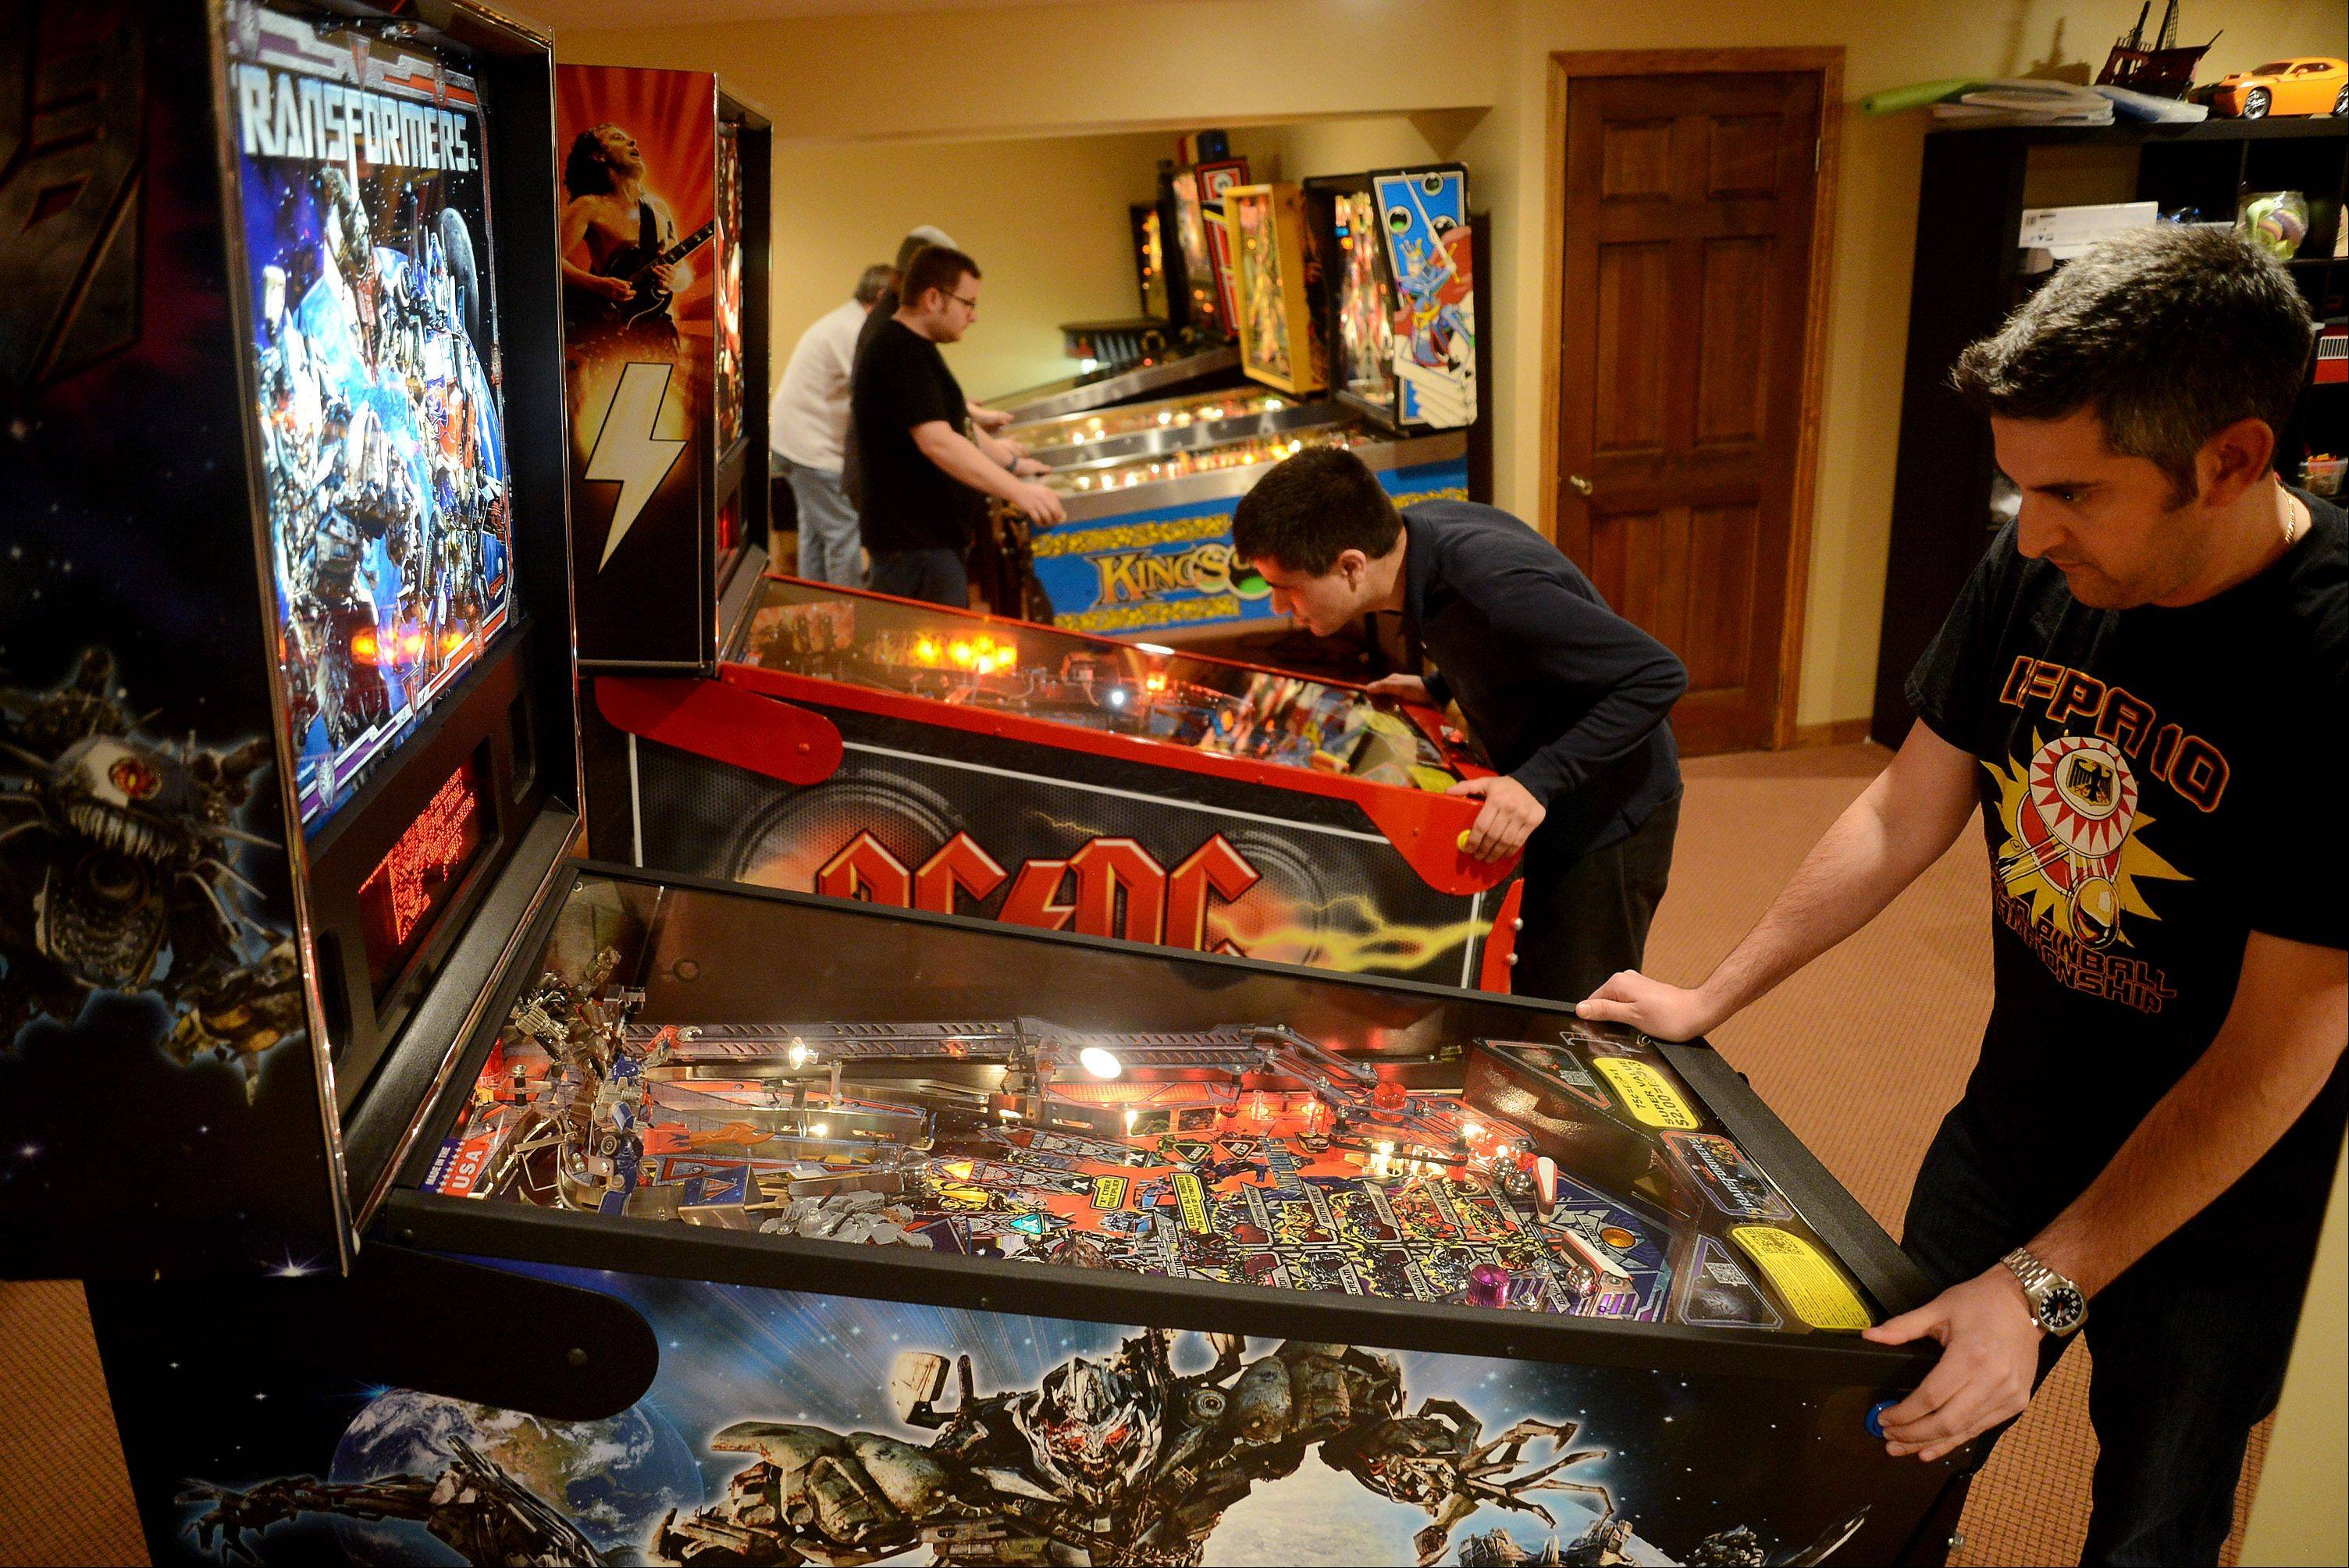 Josh Sharpe of Palatine, right, and Joseph Blasi of Des Plaines practice Saturday at the International Flipper Pinball Association tournament in Lincolnshire.